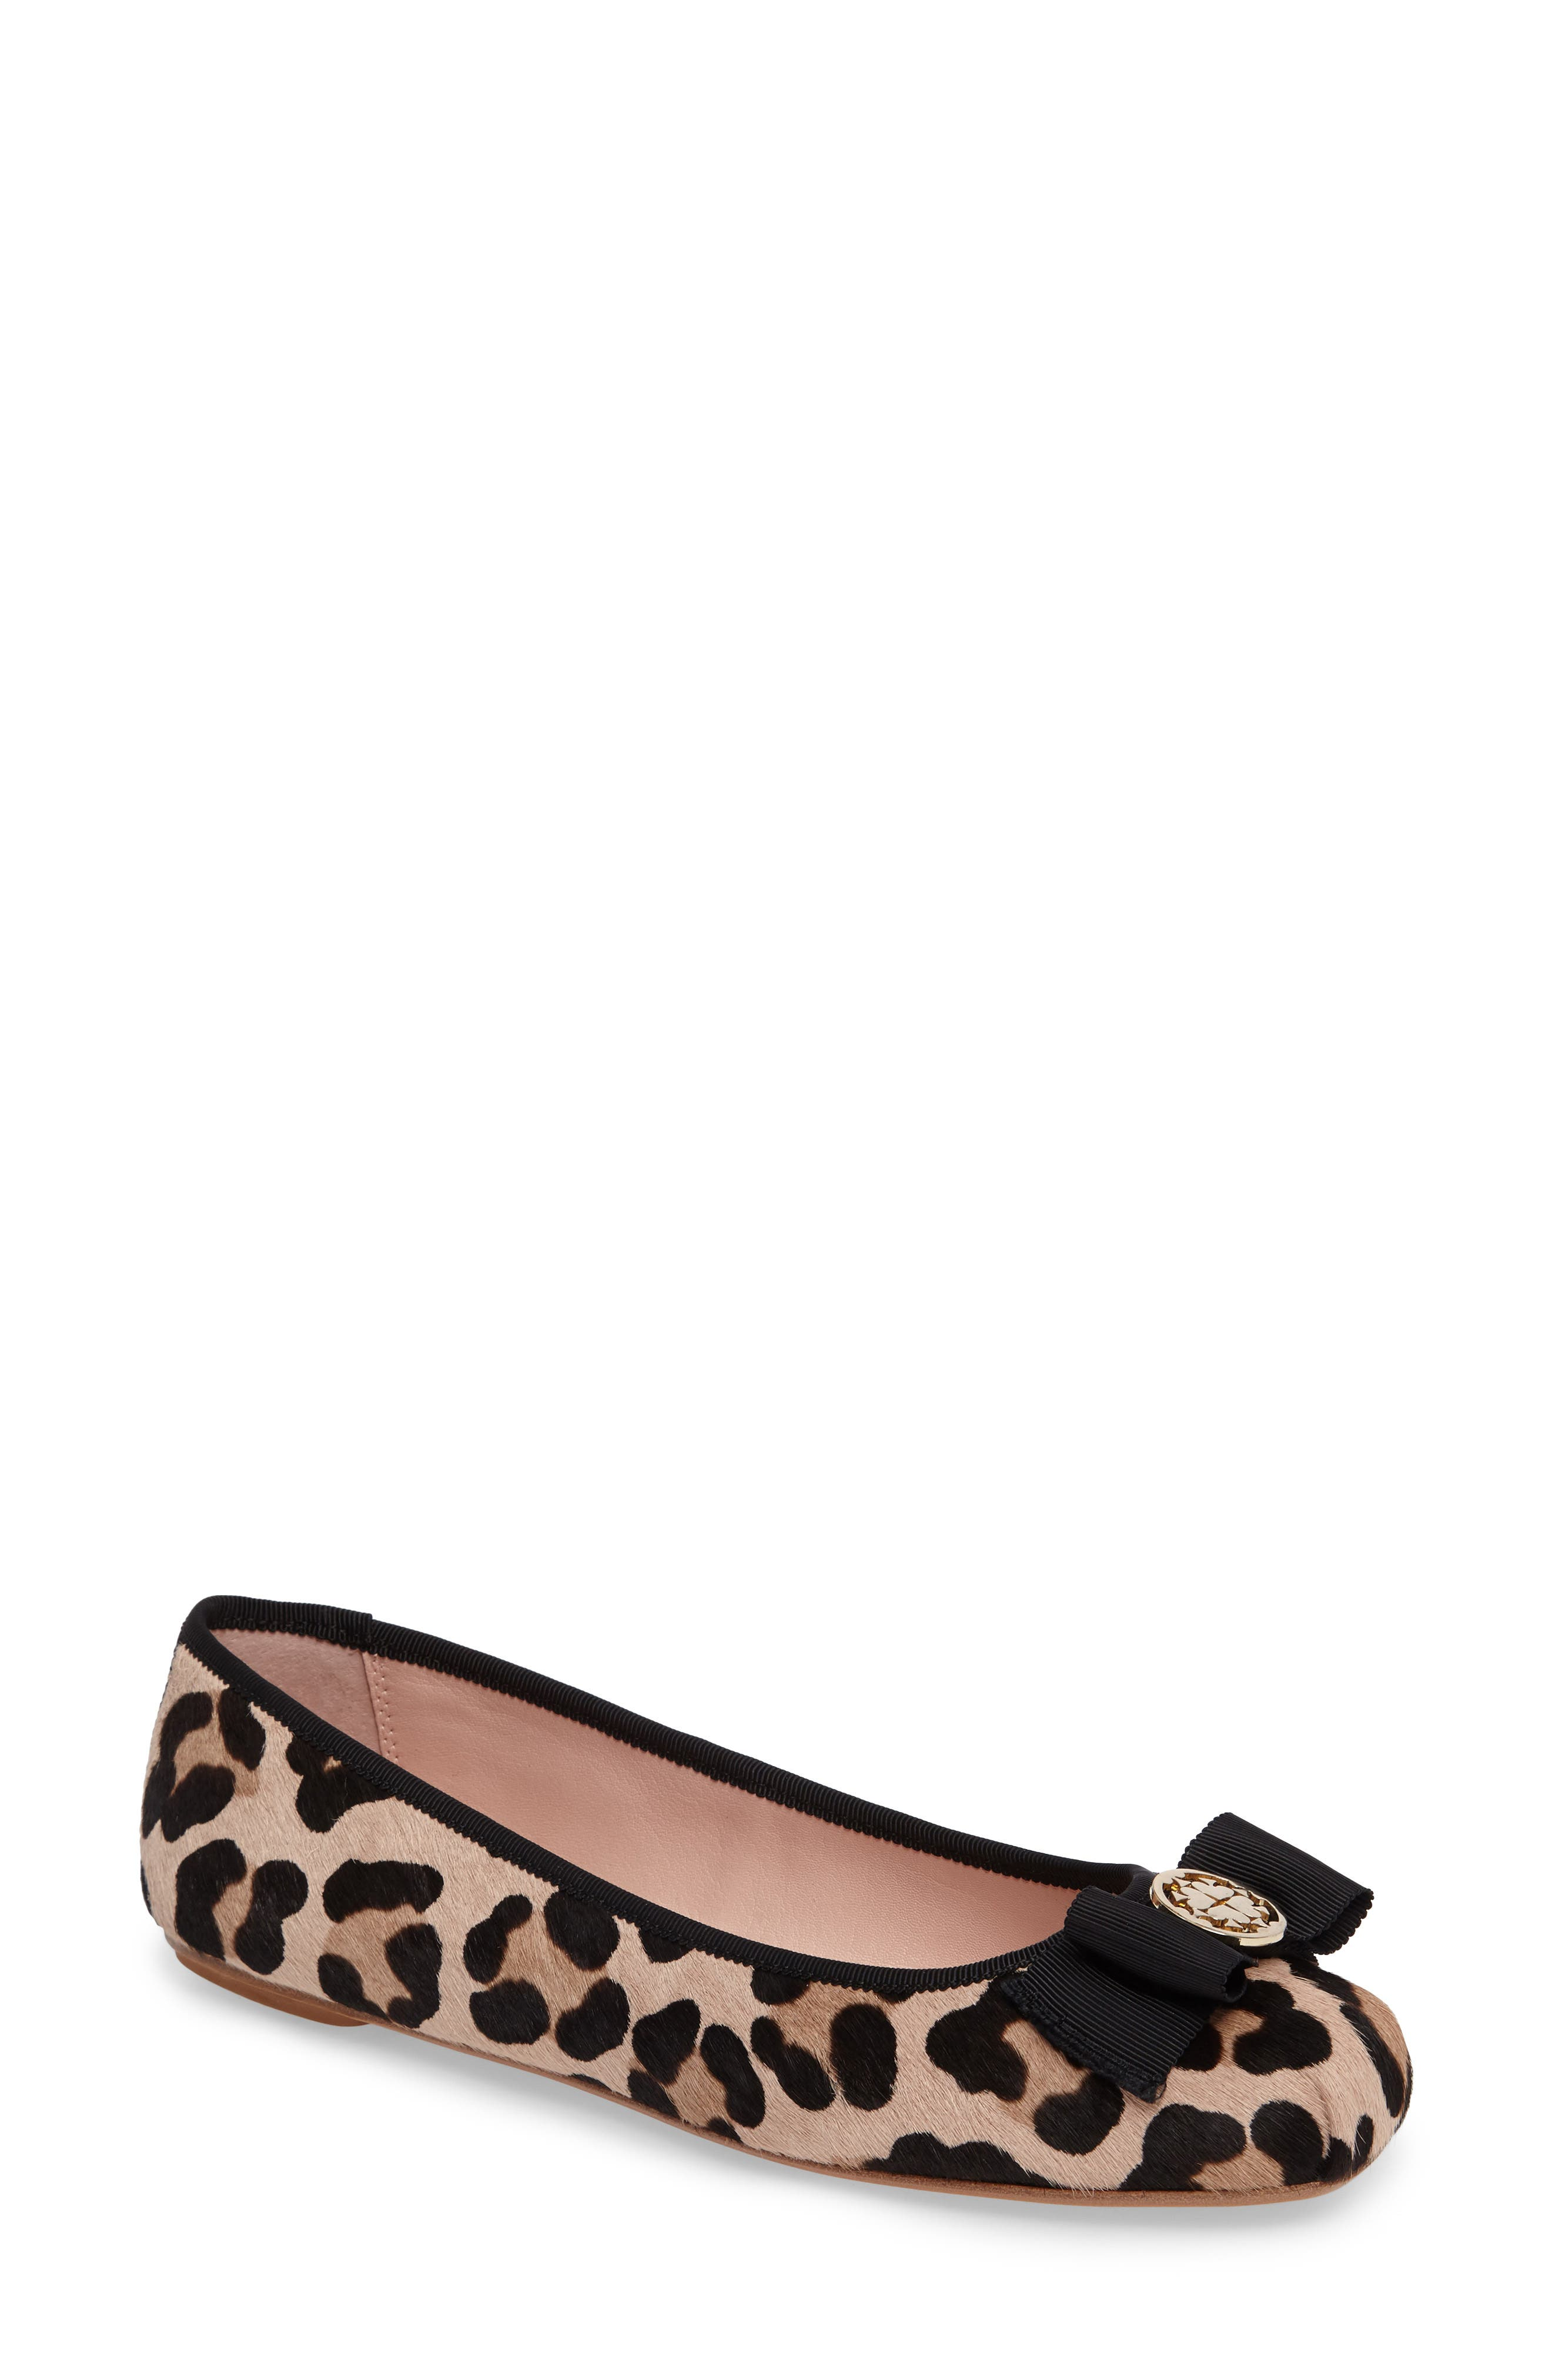 Main Image - kate spade new york fontana too genuine calf hair ballet flat (Women)